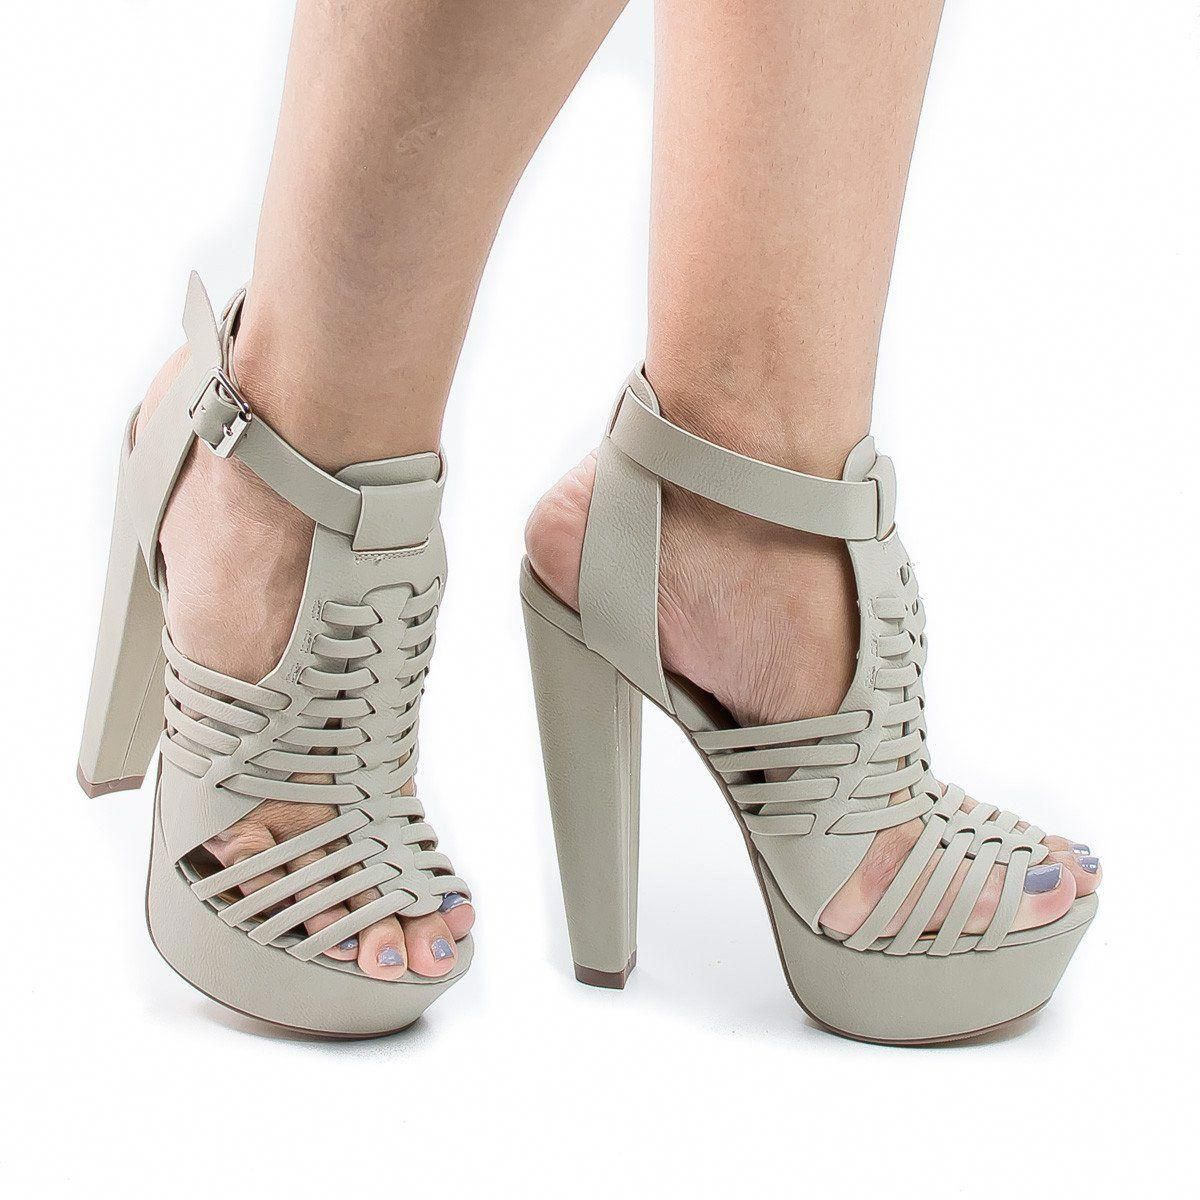 d27760d37bcb Stand tall with these gorgeous huarache   fisherman inspired high heel  sandal with a hint of